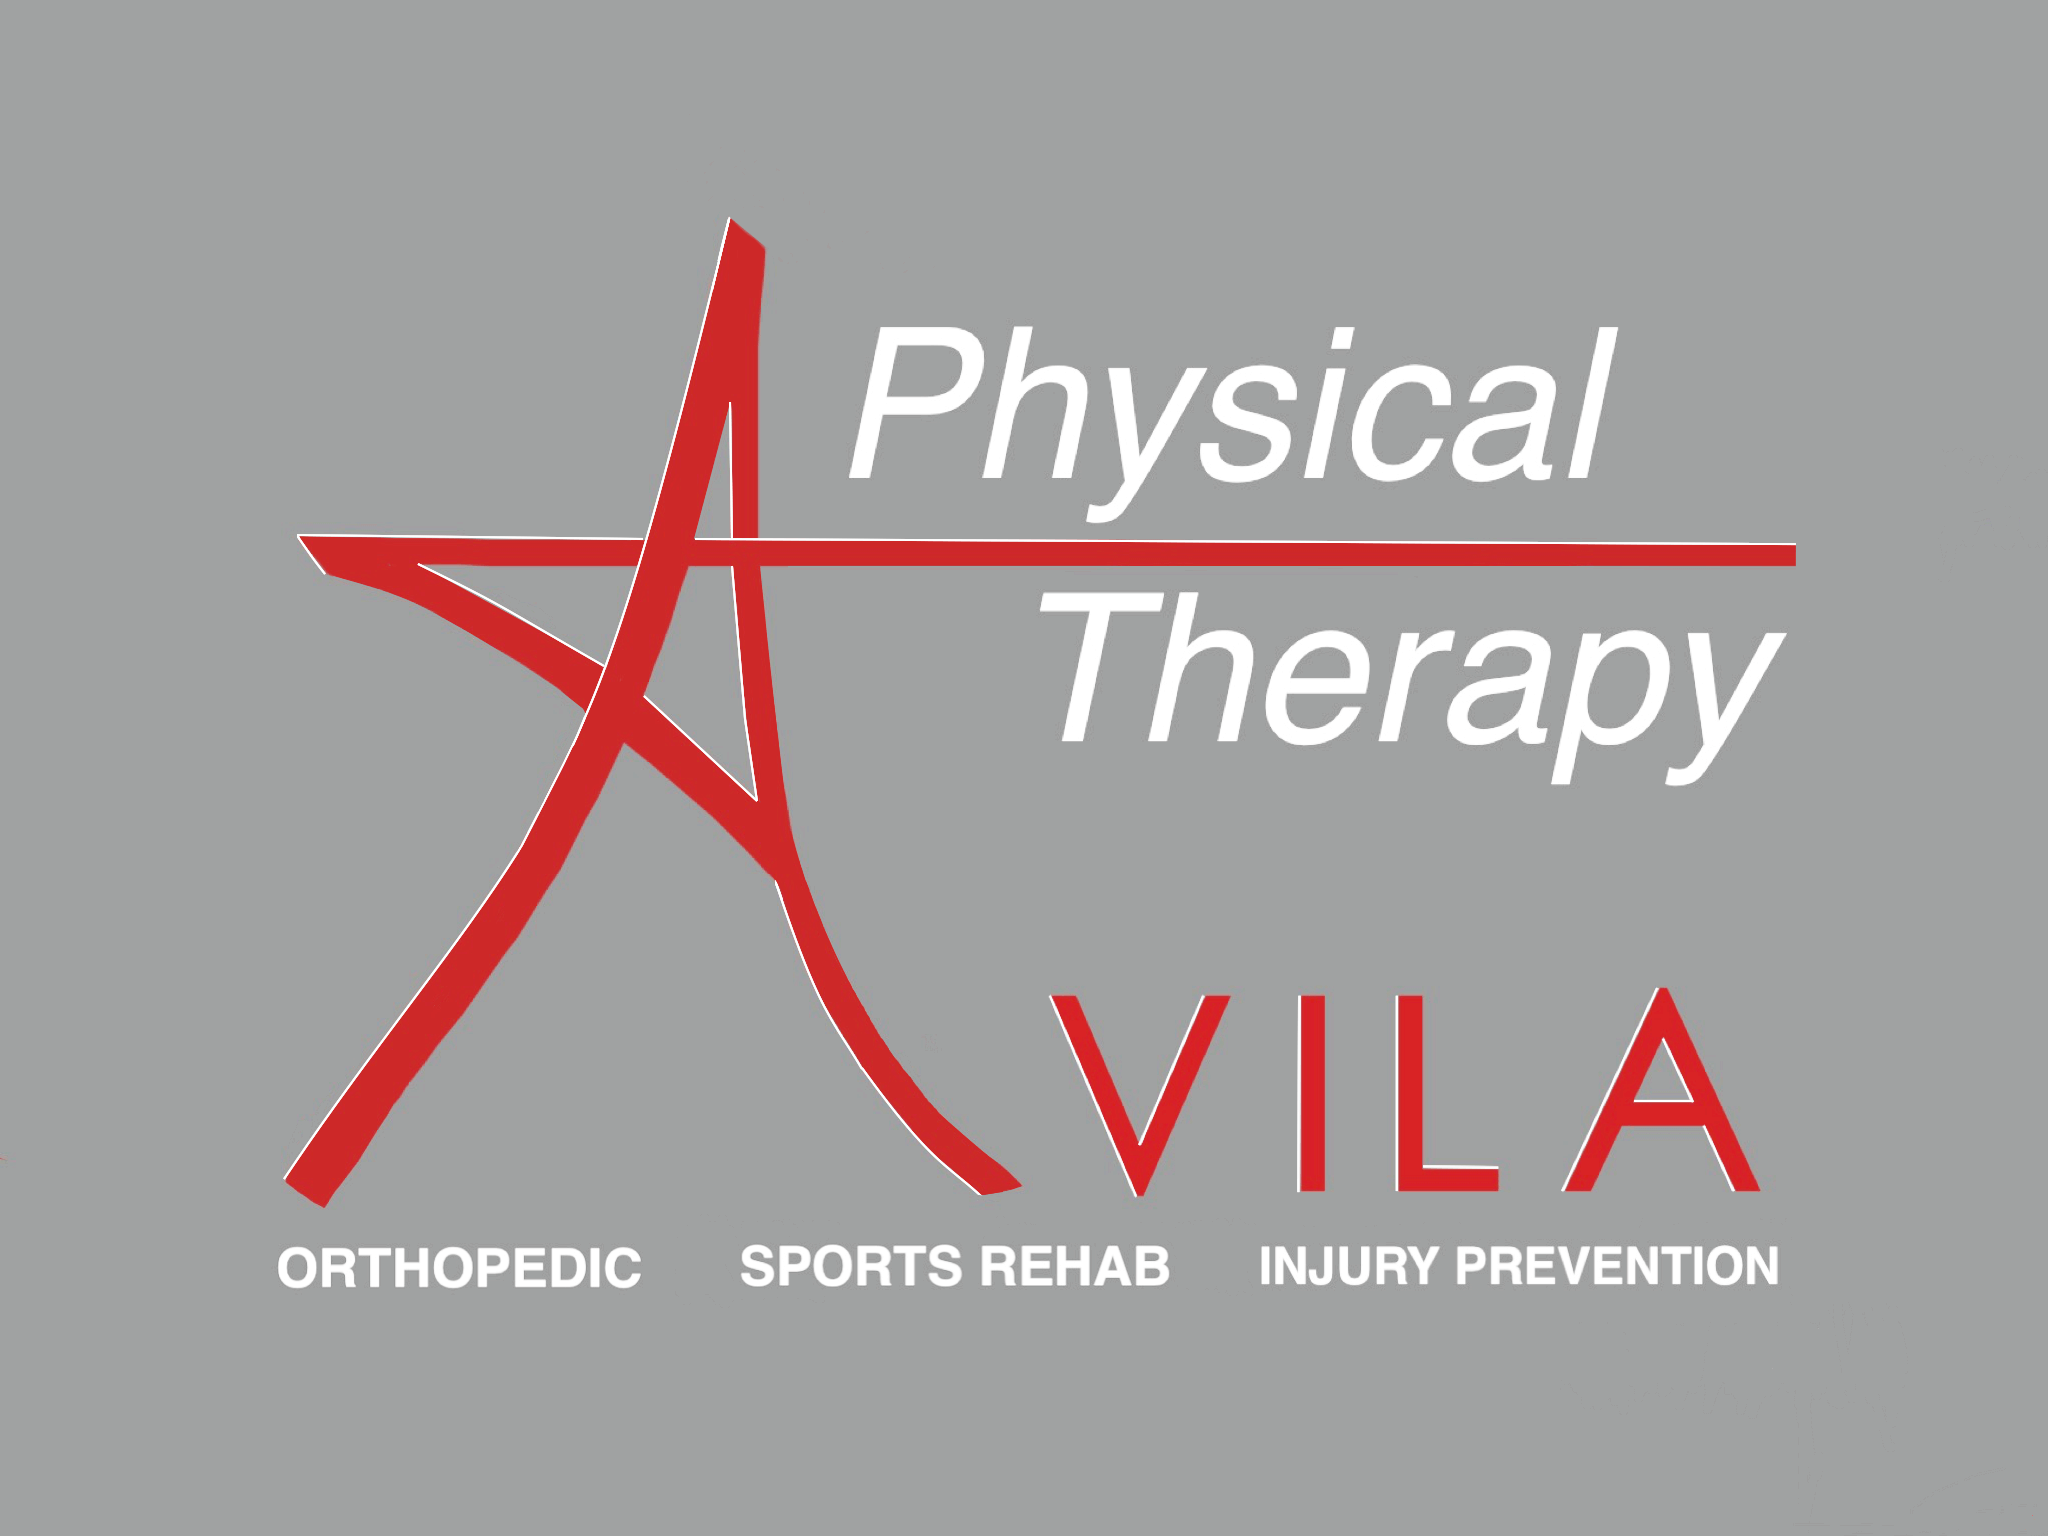 Avila Physical Therapy